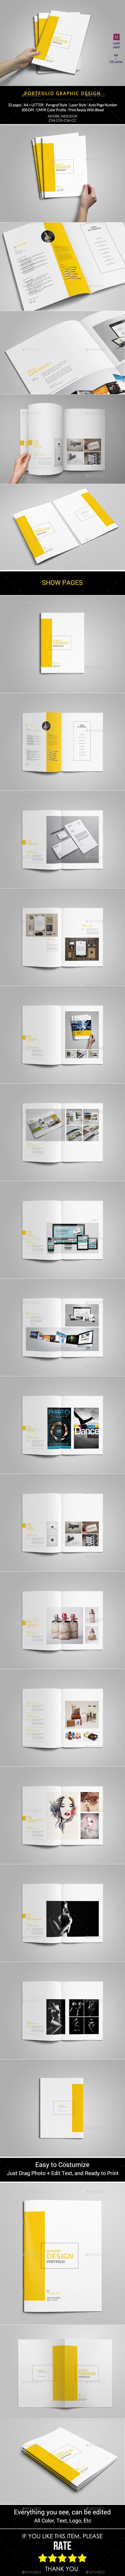 Portfolio Brochure Template #design Download: http://graphicriver.net/item/portfolio-template/11443401?ref=ksioks